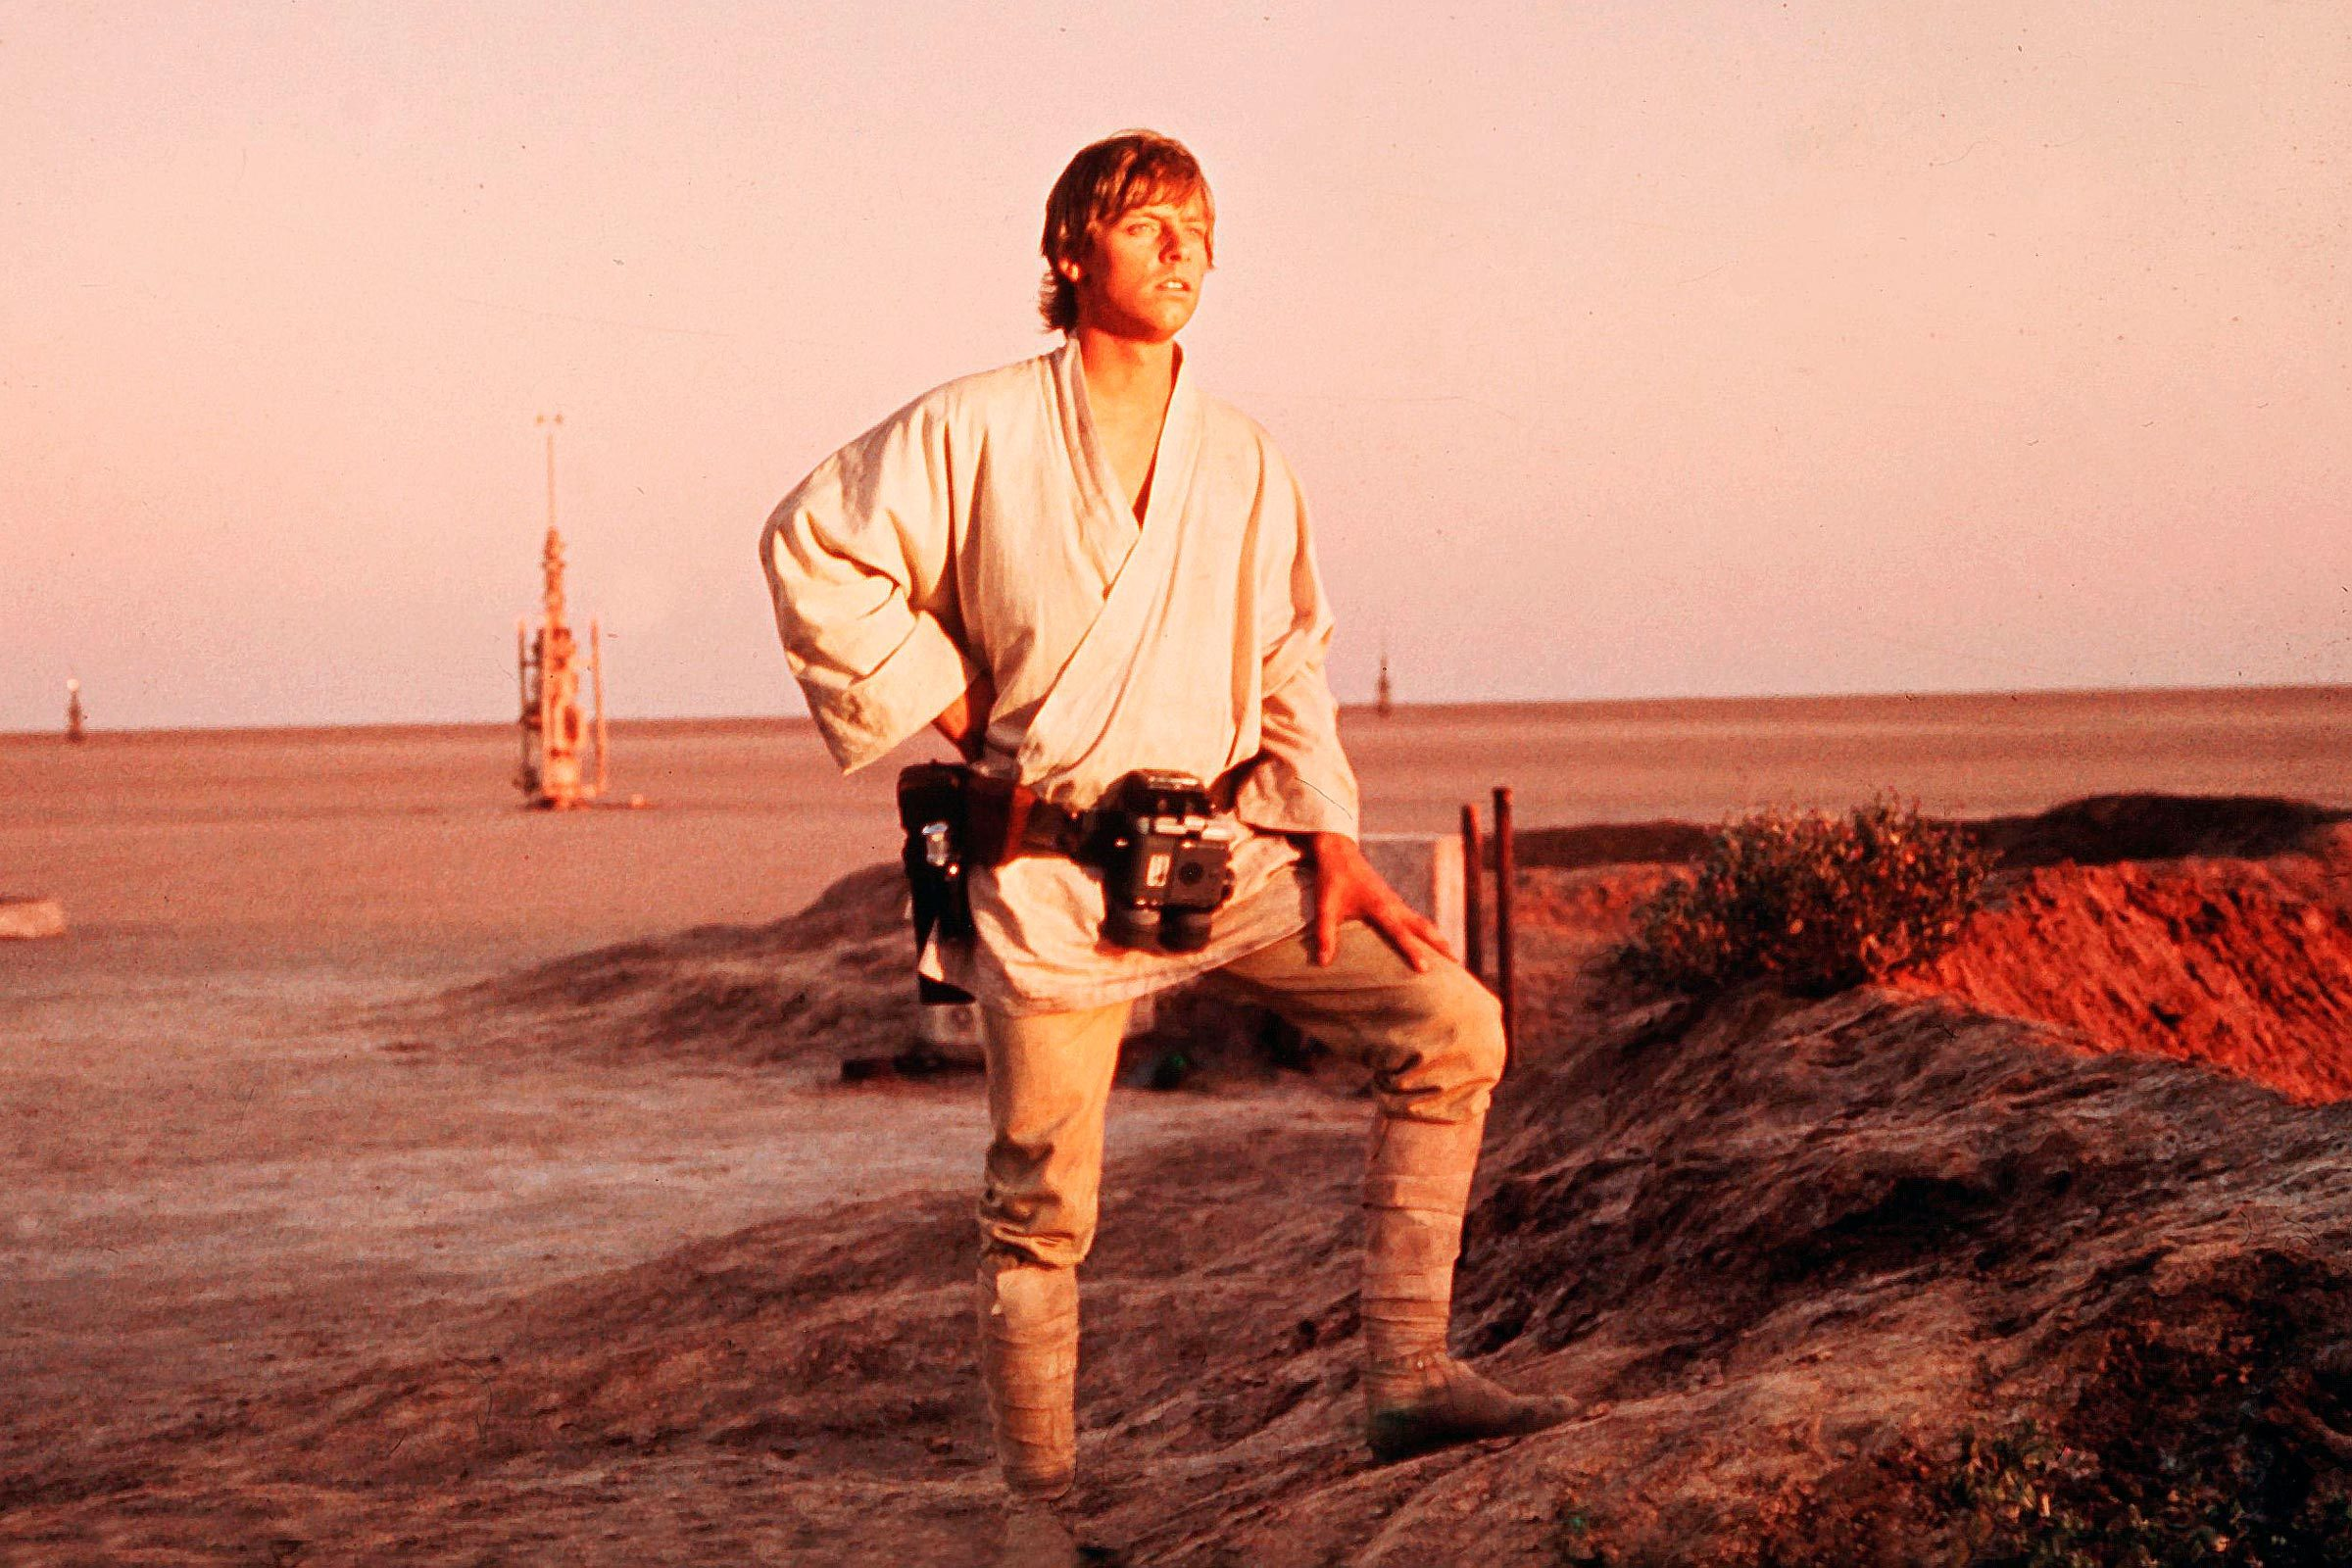 Mark Hamill on the set of Star Wars Episode IV: A New Hope, 1977